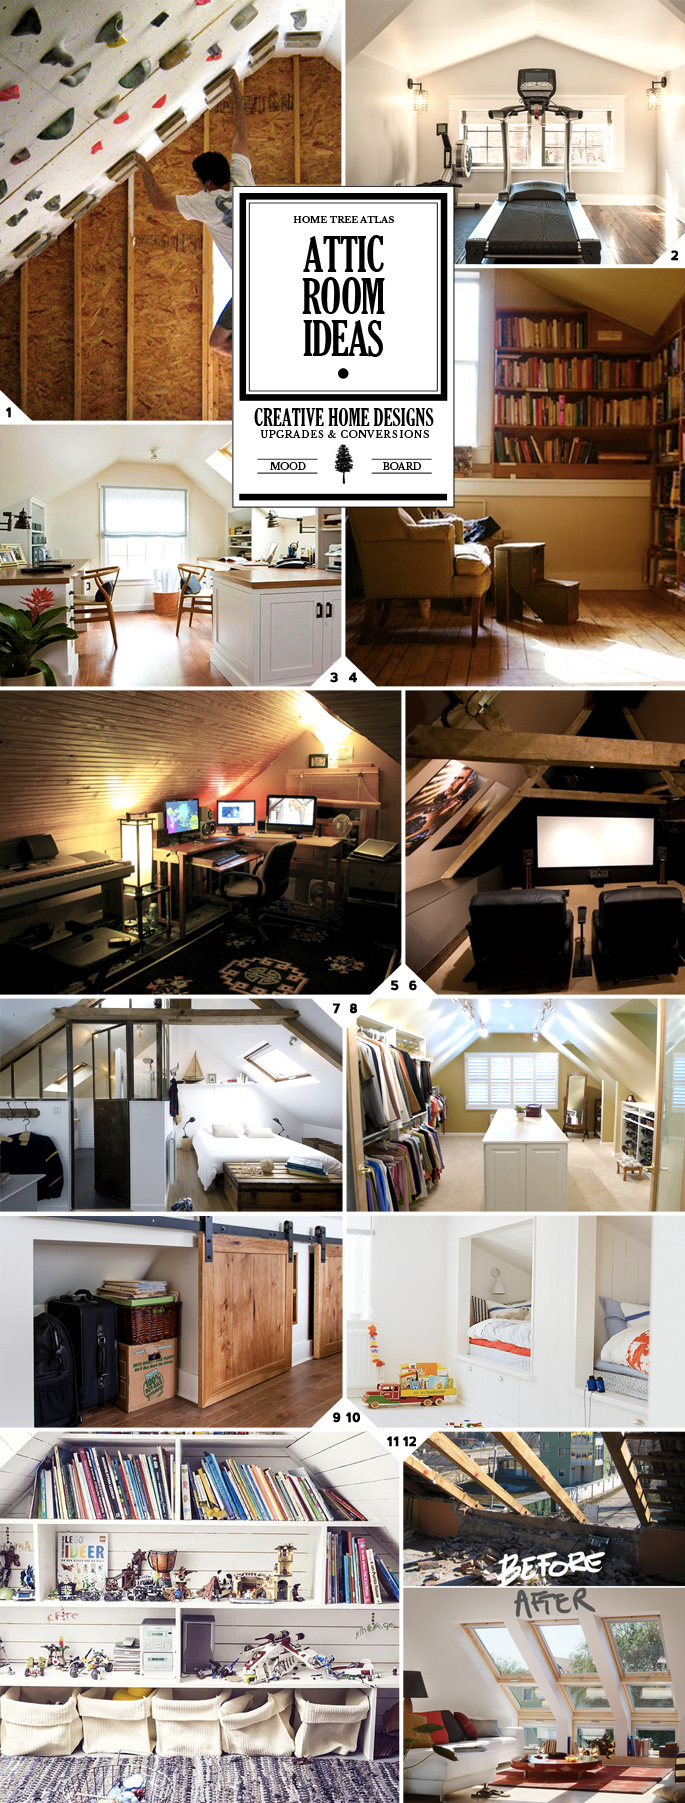 Attic Rooms - 11 Different Conversion Ideas